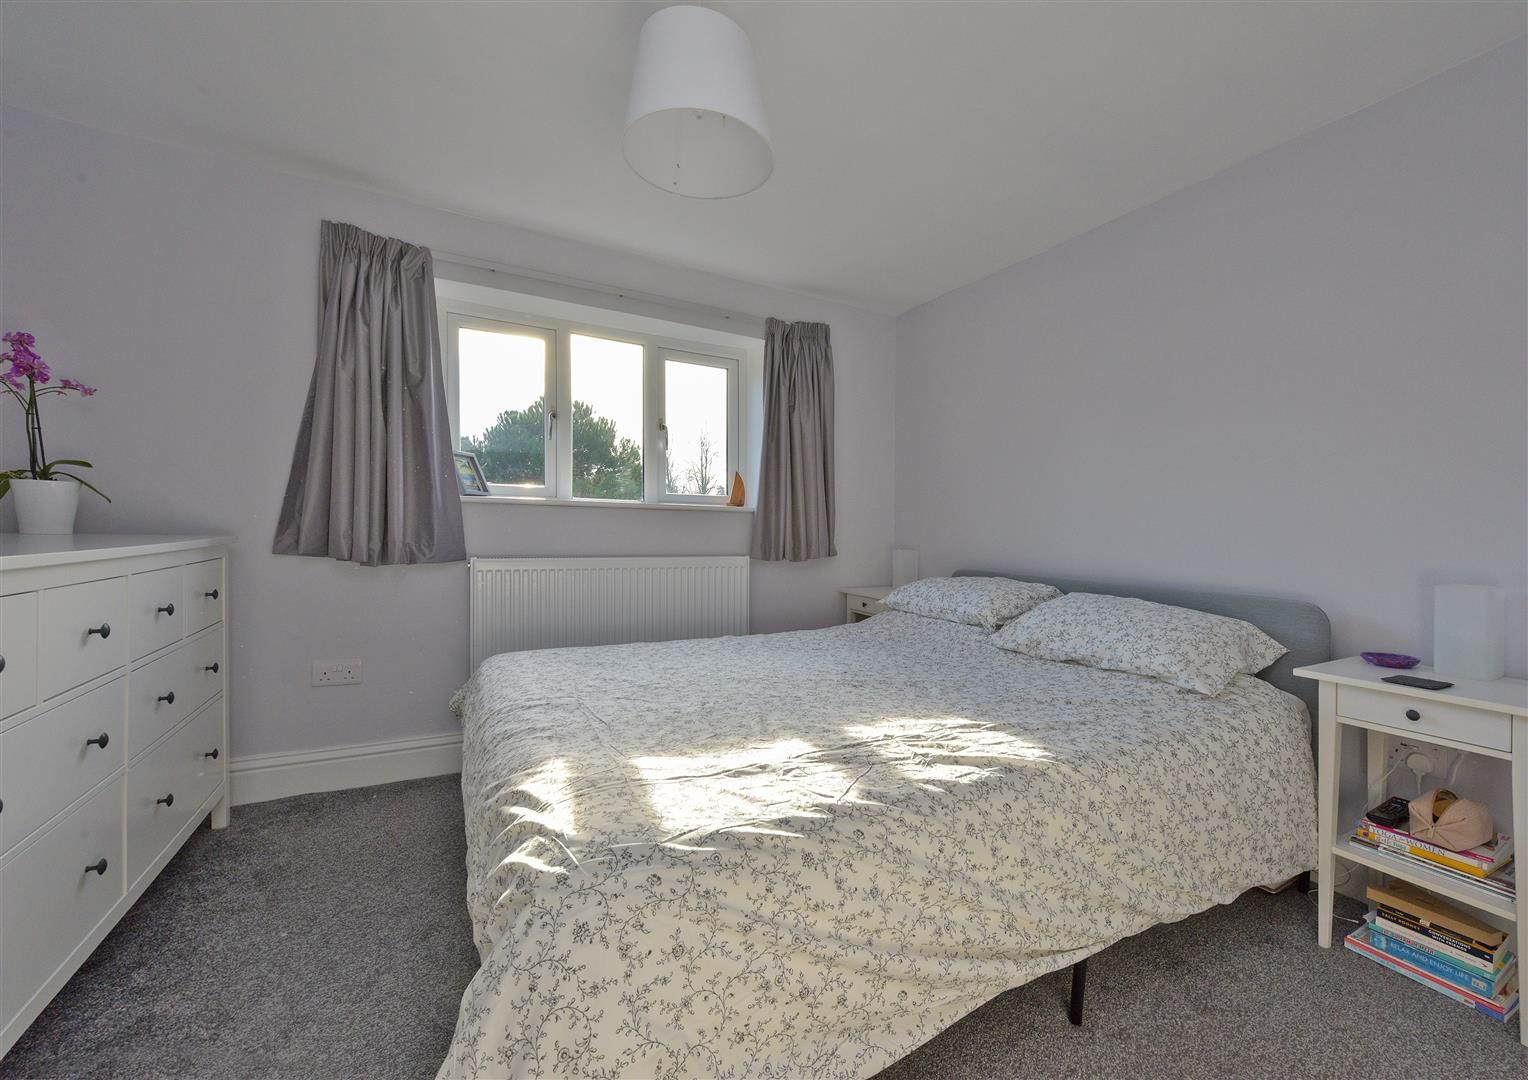 3 bed house for sale in Clent 15